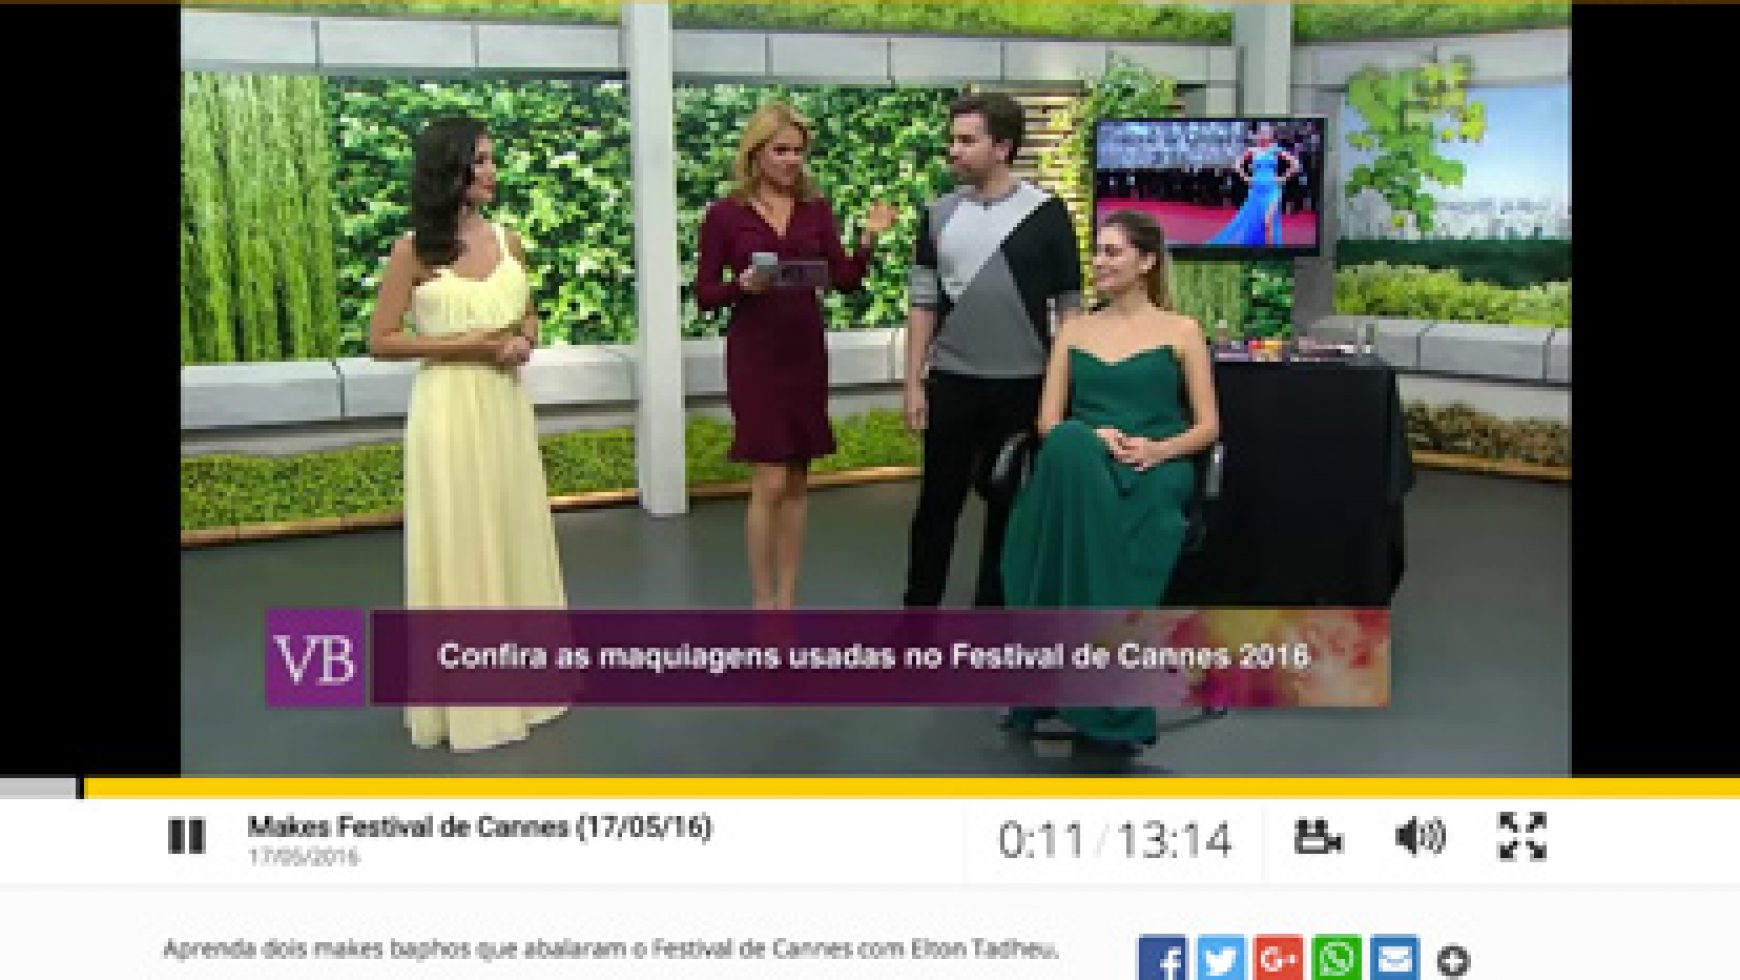 Makes Festivas de Cannes (17/05/2016)